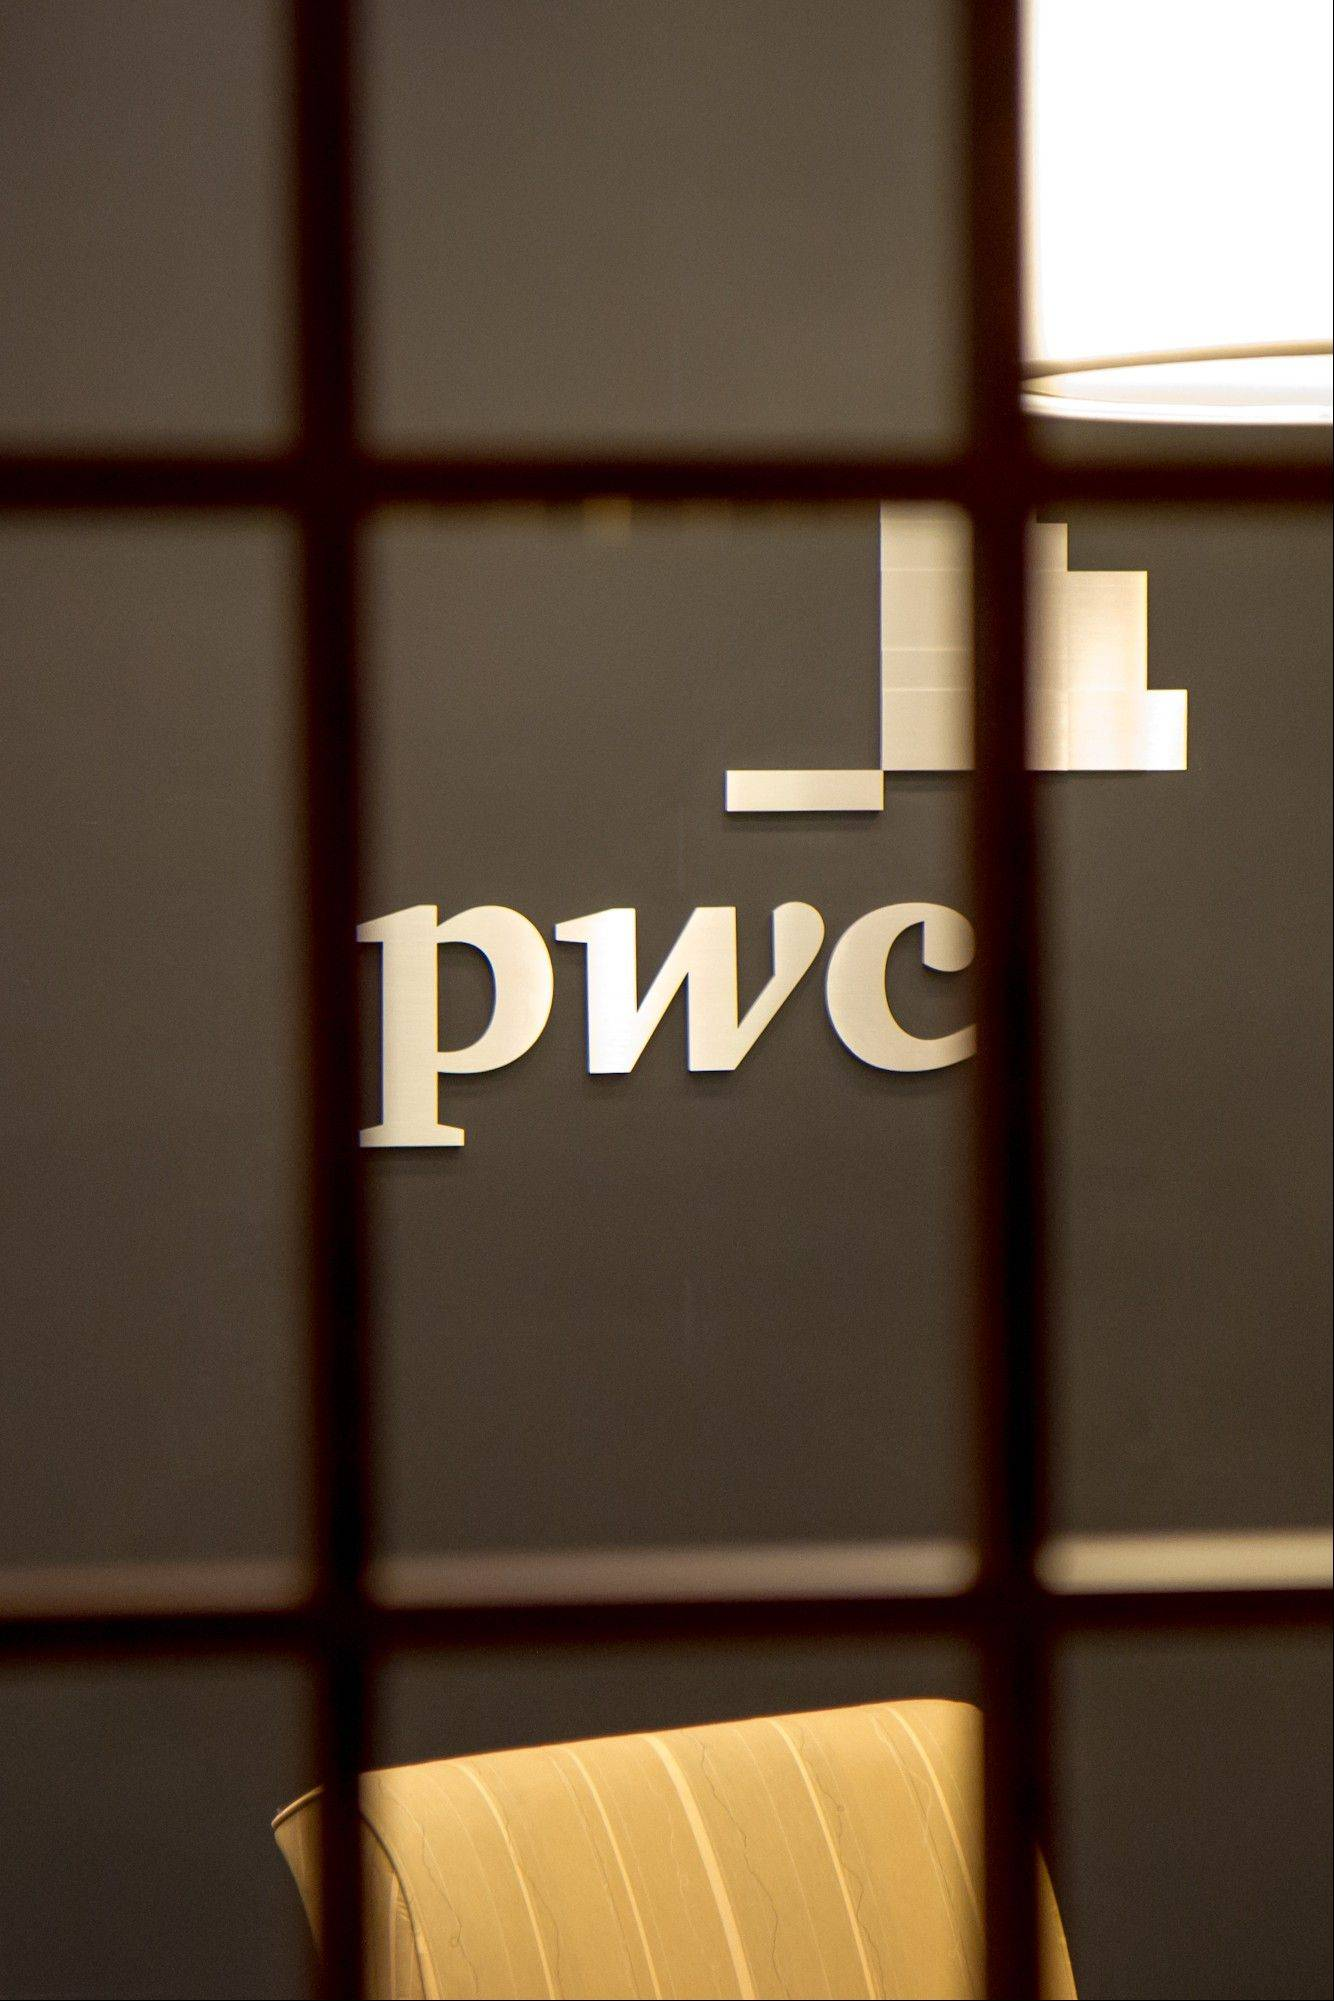 The PricewaterhouseCoopers office in Franklin, Tenn., is seen from outside its doors on Wednesday. The Secret Service said is investigating the reported theft of Mitt Romney�s federal tax records during a break-in at the office. The company said there was no evidence Romney tax files were stolen.